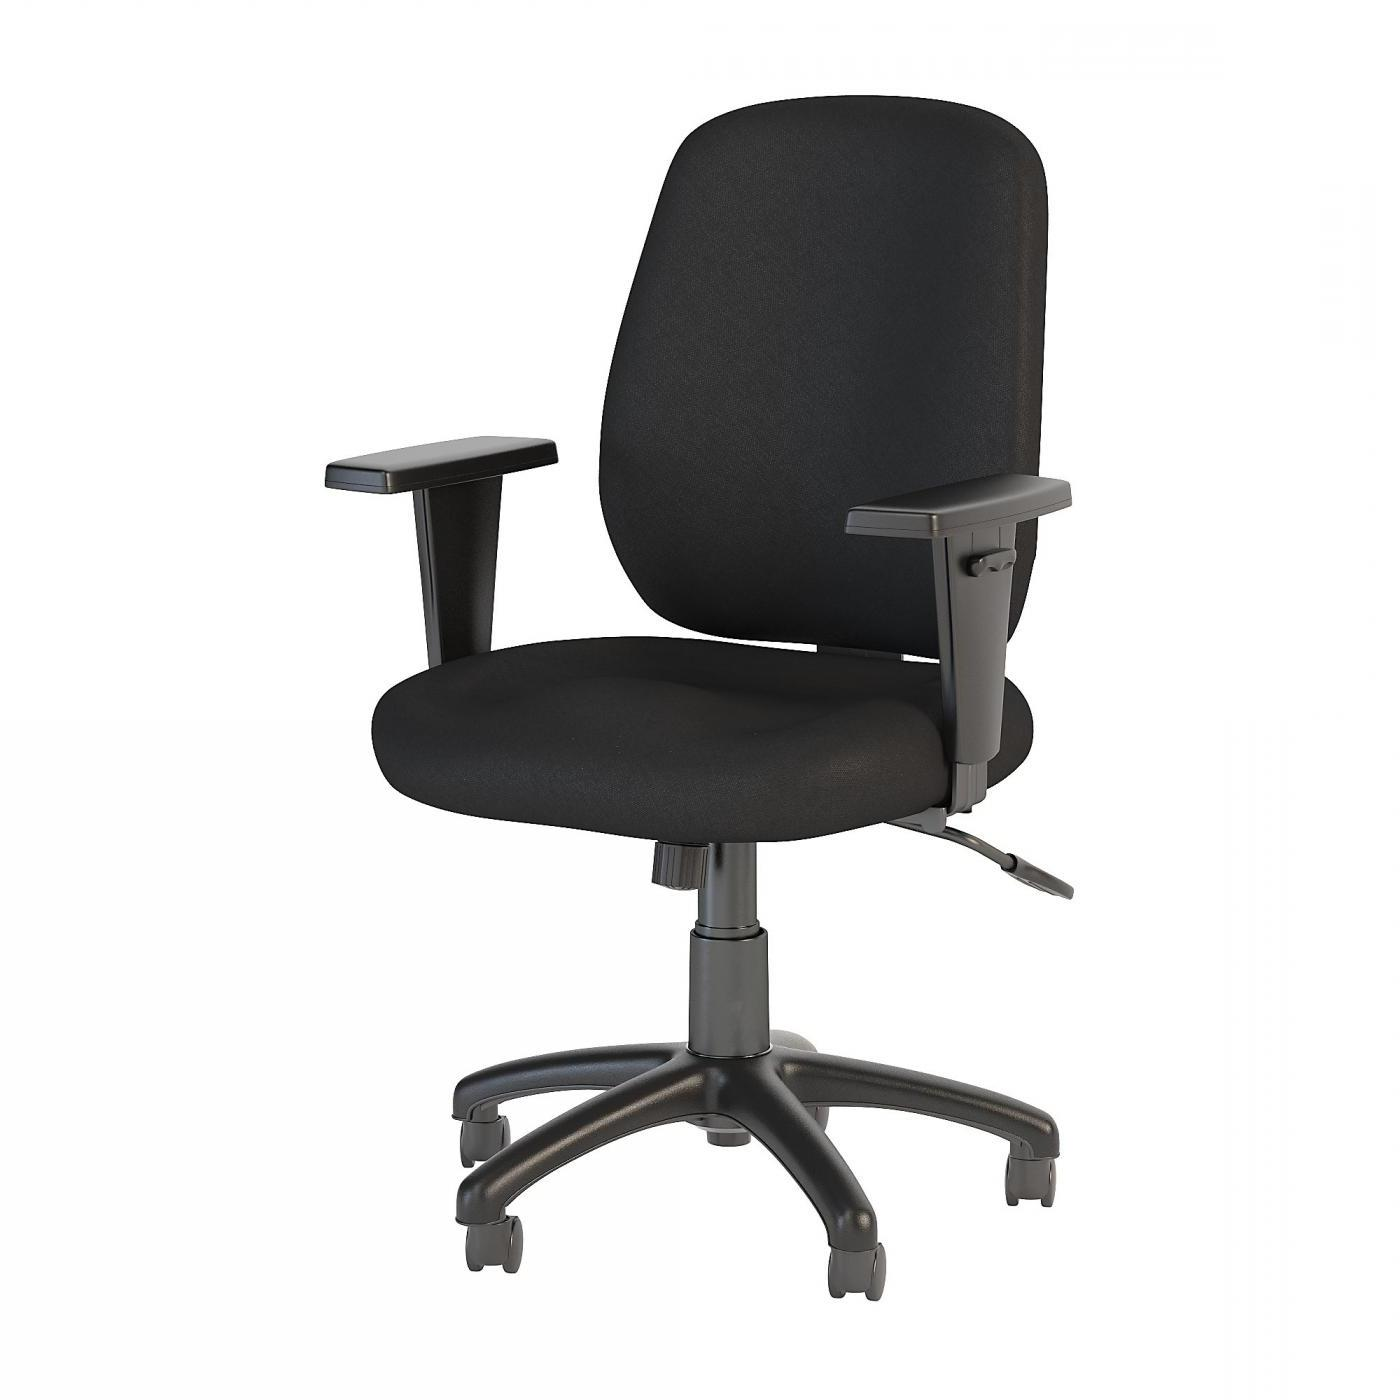 BUSH BUSINESS FURNITURE PROSPER MID BACK TASK CHAIR. FREE SHIPPING.  SALE DEDUCT 10% MORE ENTER '10percent' IN COUPON CODE BOX WHILE CHECKING OUT.